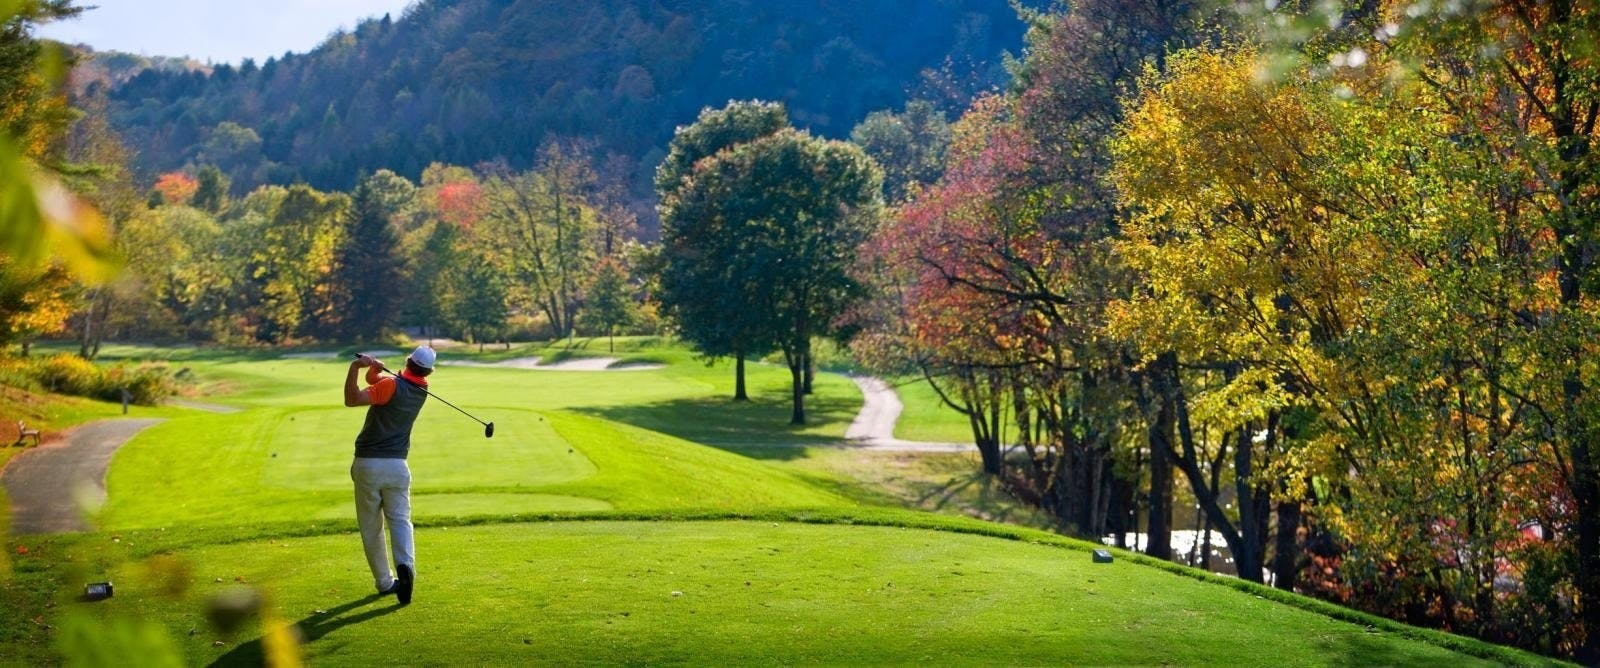 Gold Course at Woodstock Inn & Resort, Vermont